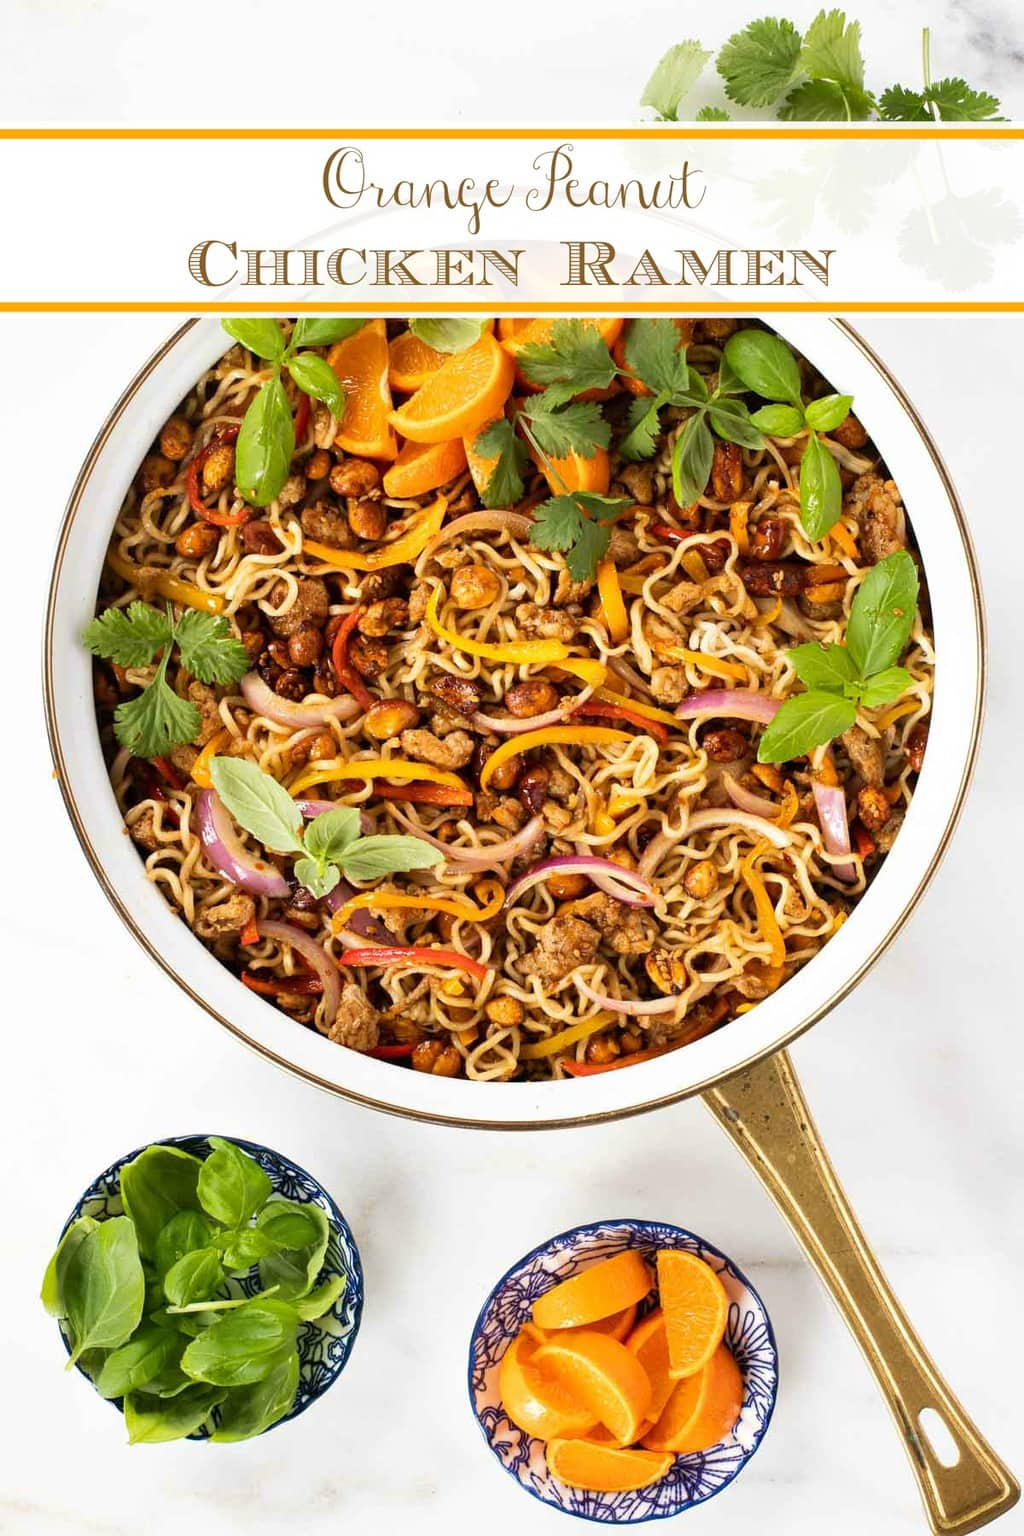 This Orange Peanut Chicken Ramen is an easy, delicious dinner option that\'s loaded with lots of fresh veggies, lean chicken, tender ramen noodles and crunchy stir-fried peanuts. The sweet, gingery Asian sauce ties it all together! #chickenramen, #easychickendinner #asianchickendinnerP #peanutchickenramen